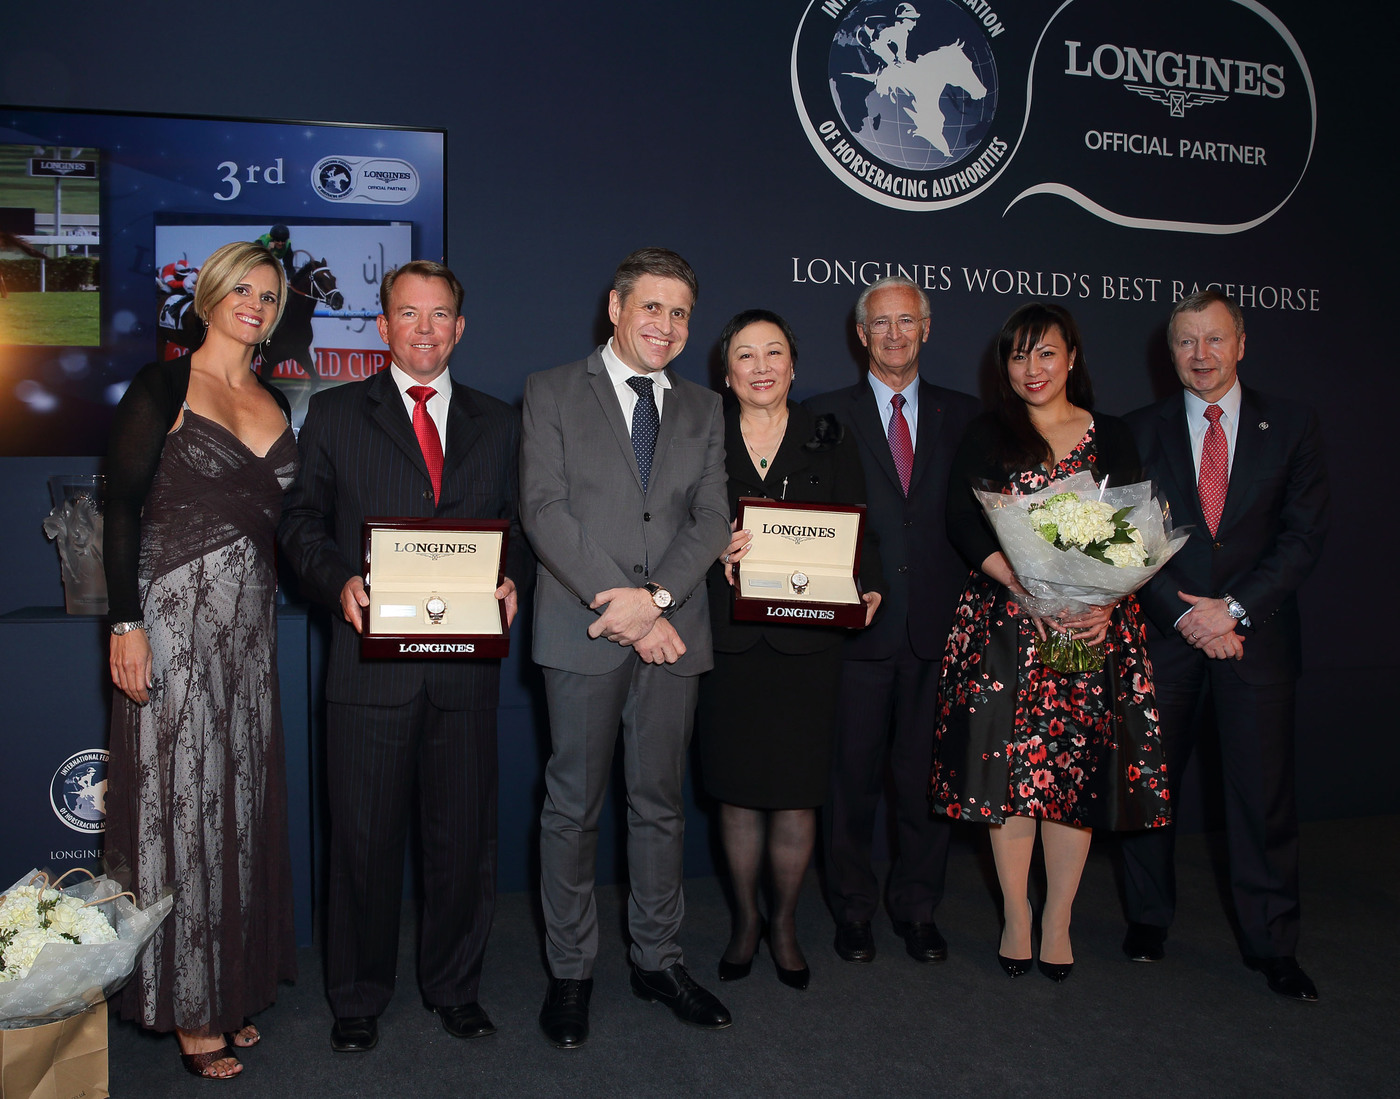 Longines Flat Racing Event: Just A Way honoured as the 2014 Longines World's Best Racehorse  4